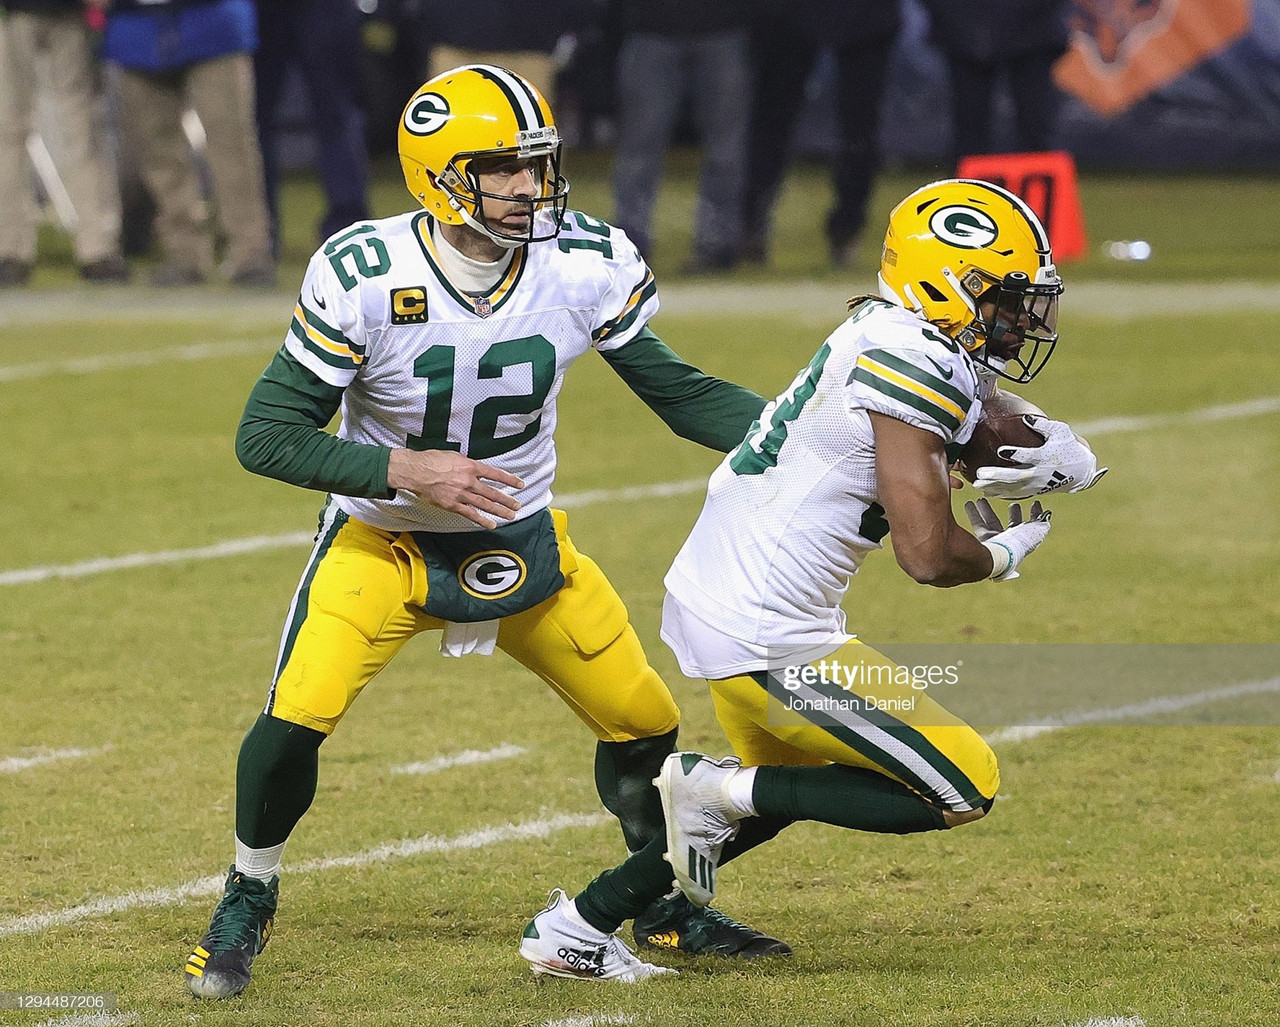 Aaron Rodgers and Aaron Jones gear up for another shot at the Super Bowl.(Photo by Jonathan Daniel/Getty Images)